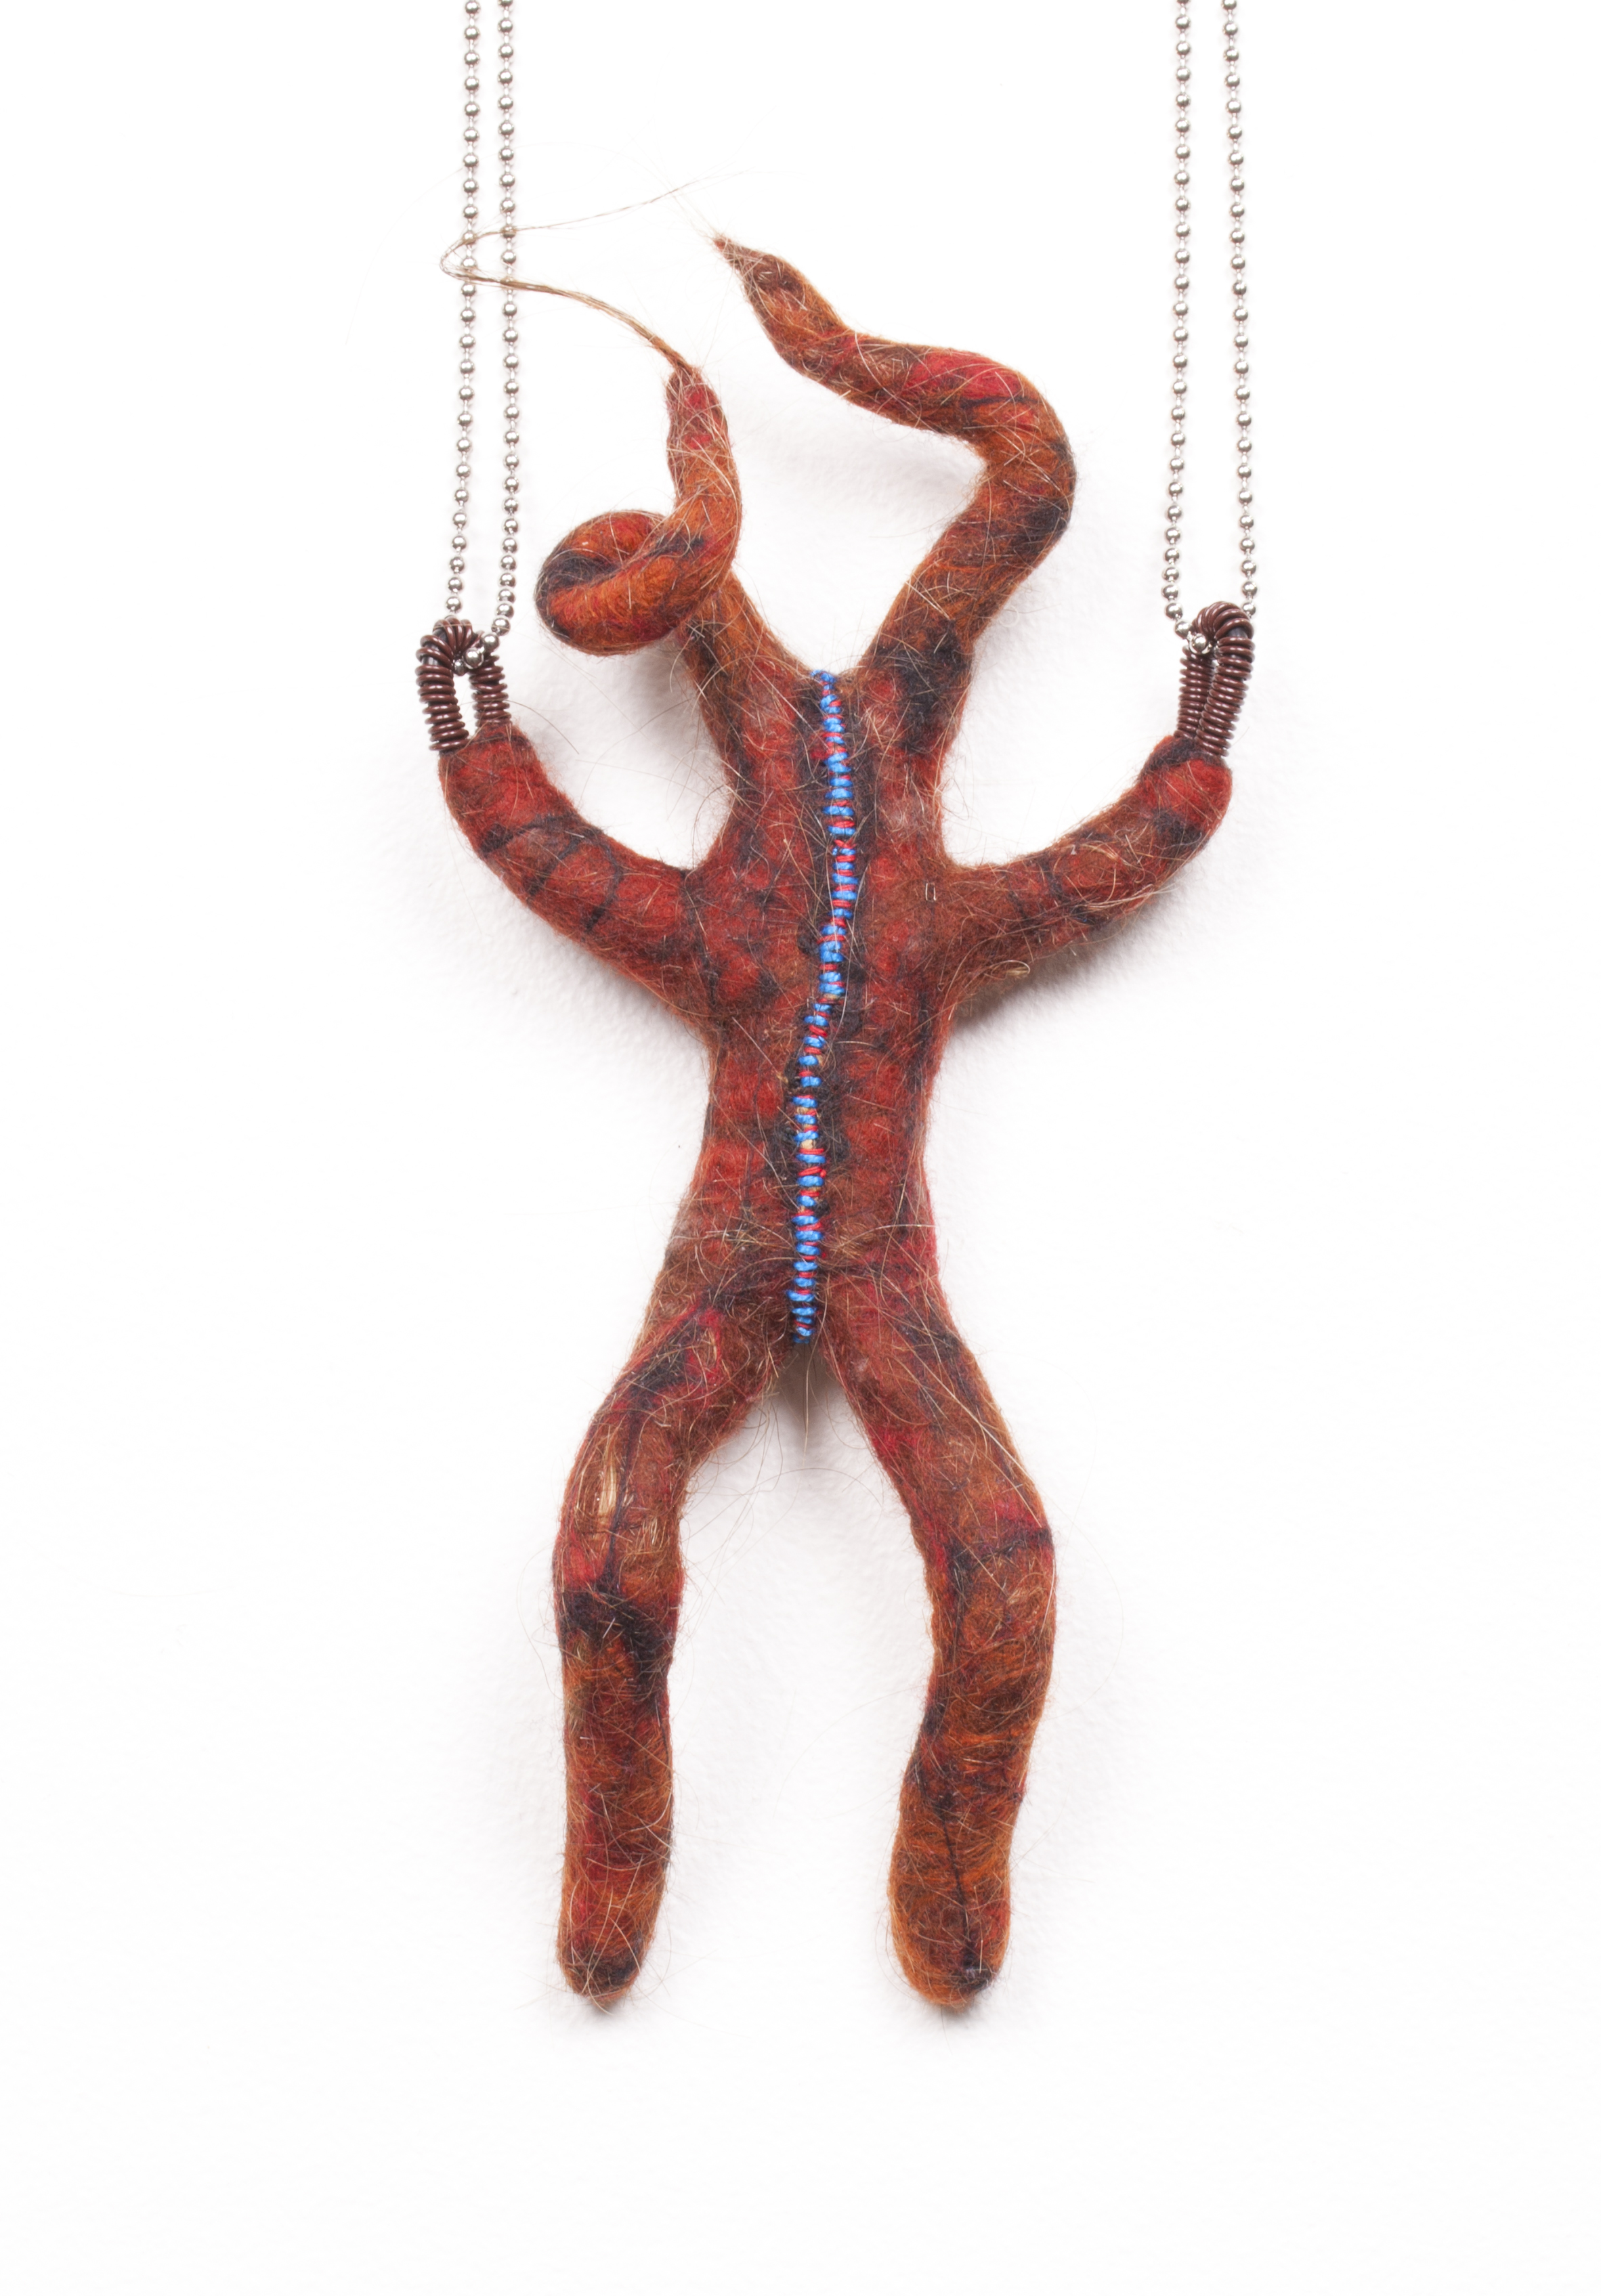 Hoi Polloi (2013). Human hair, wool & thread felted on wire armature.